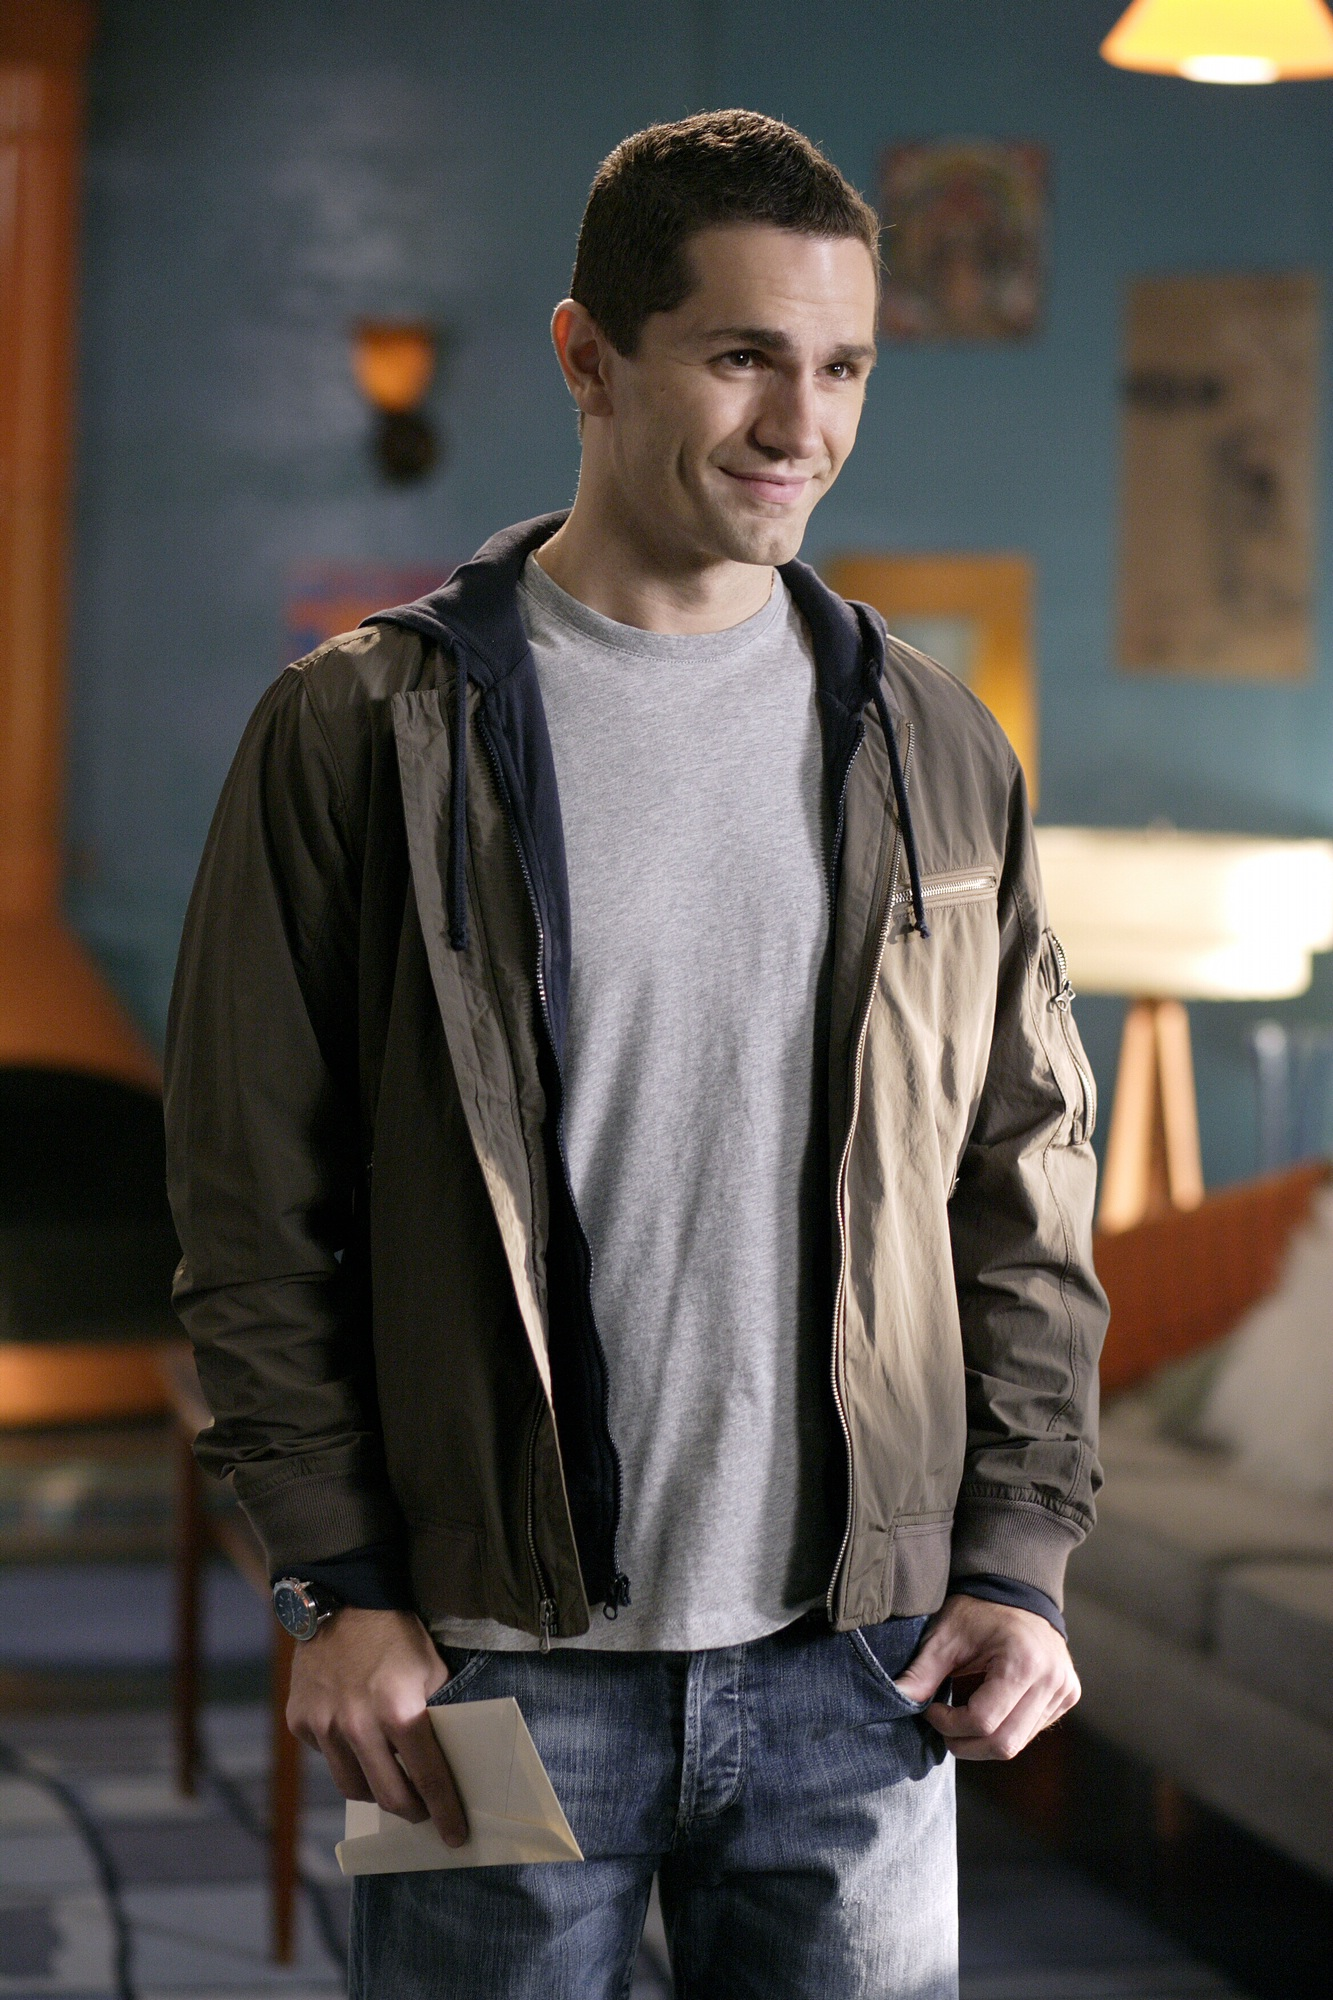 Davis Bloome (Smallville)